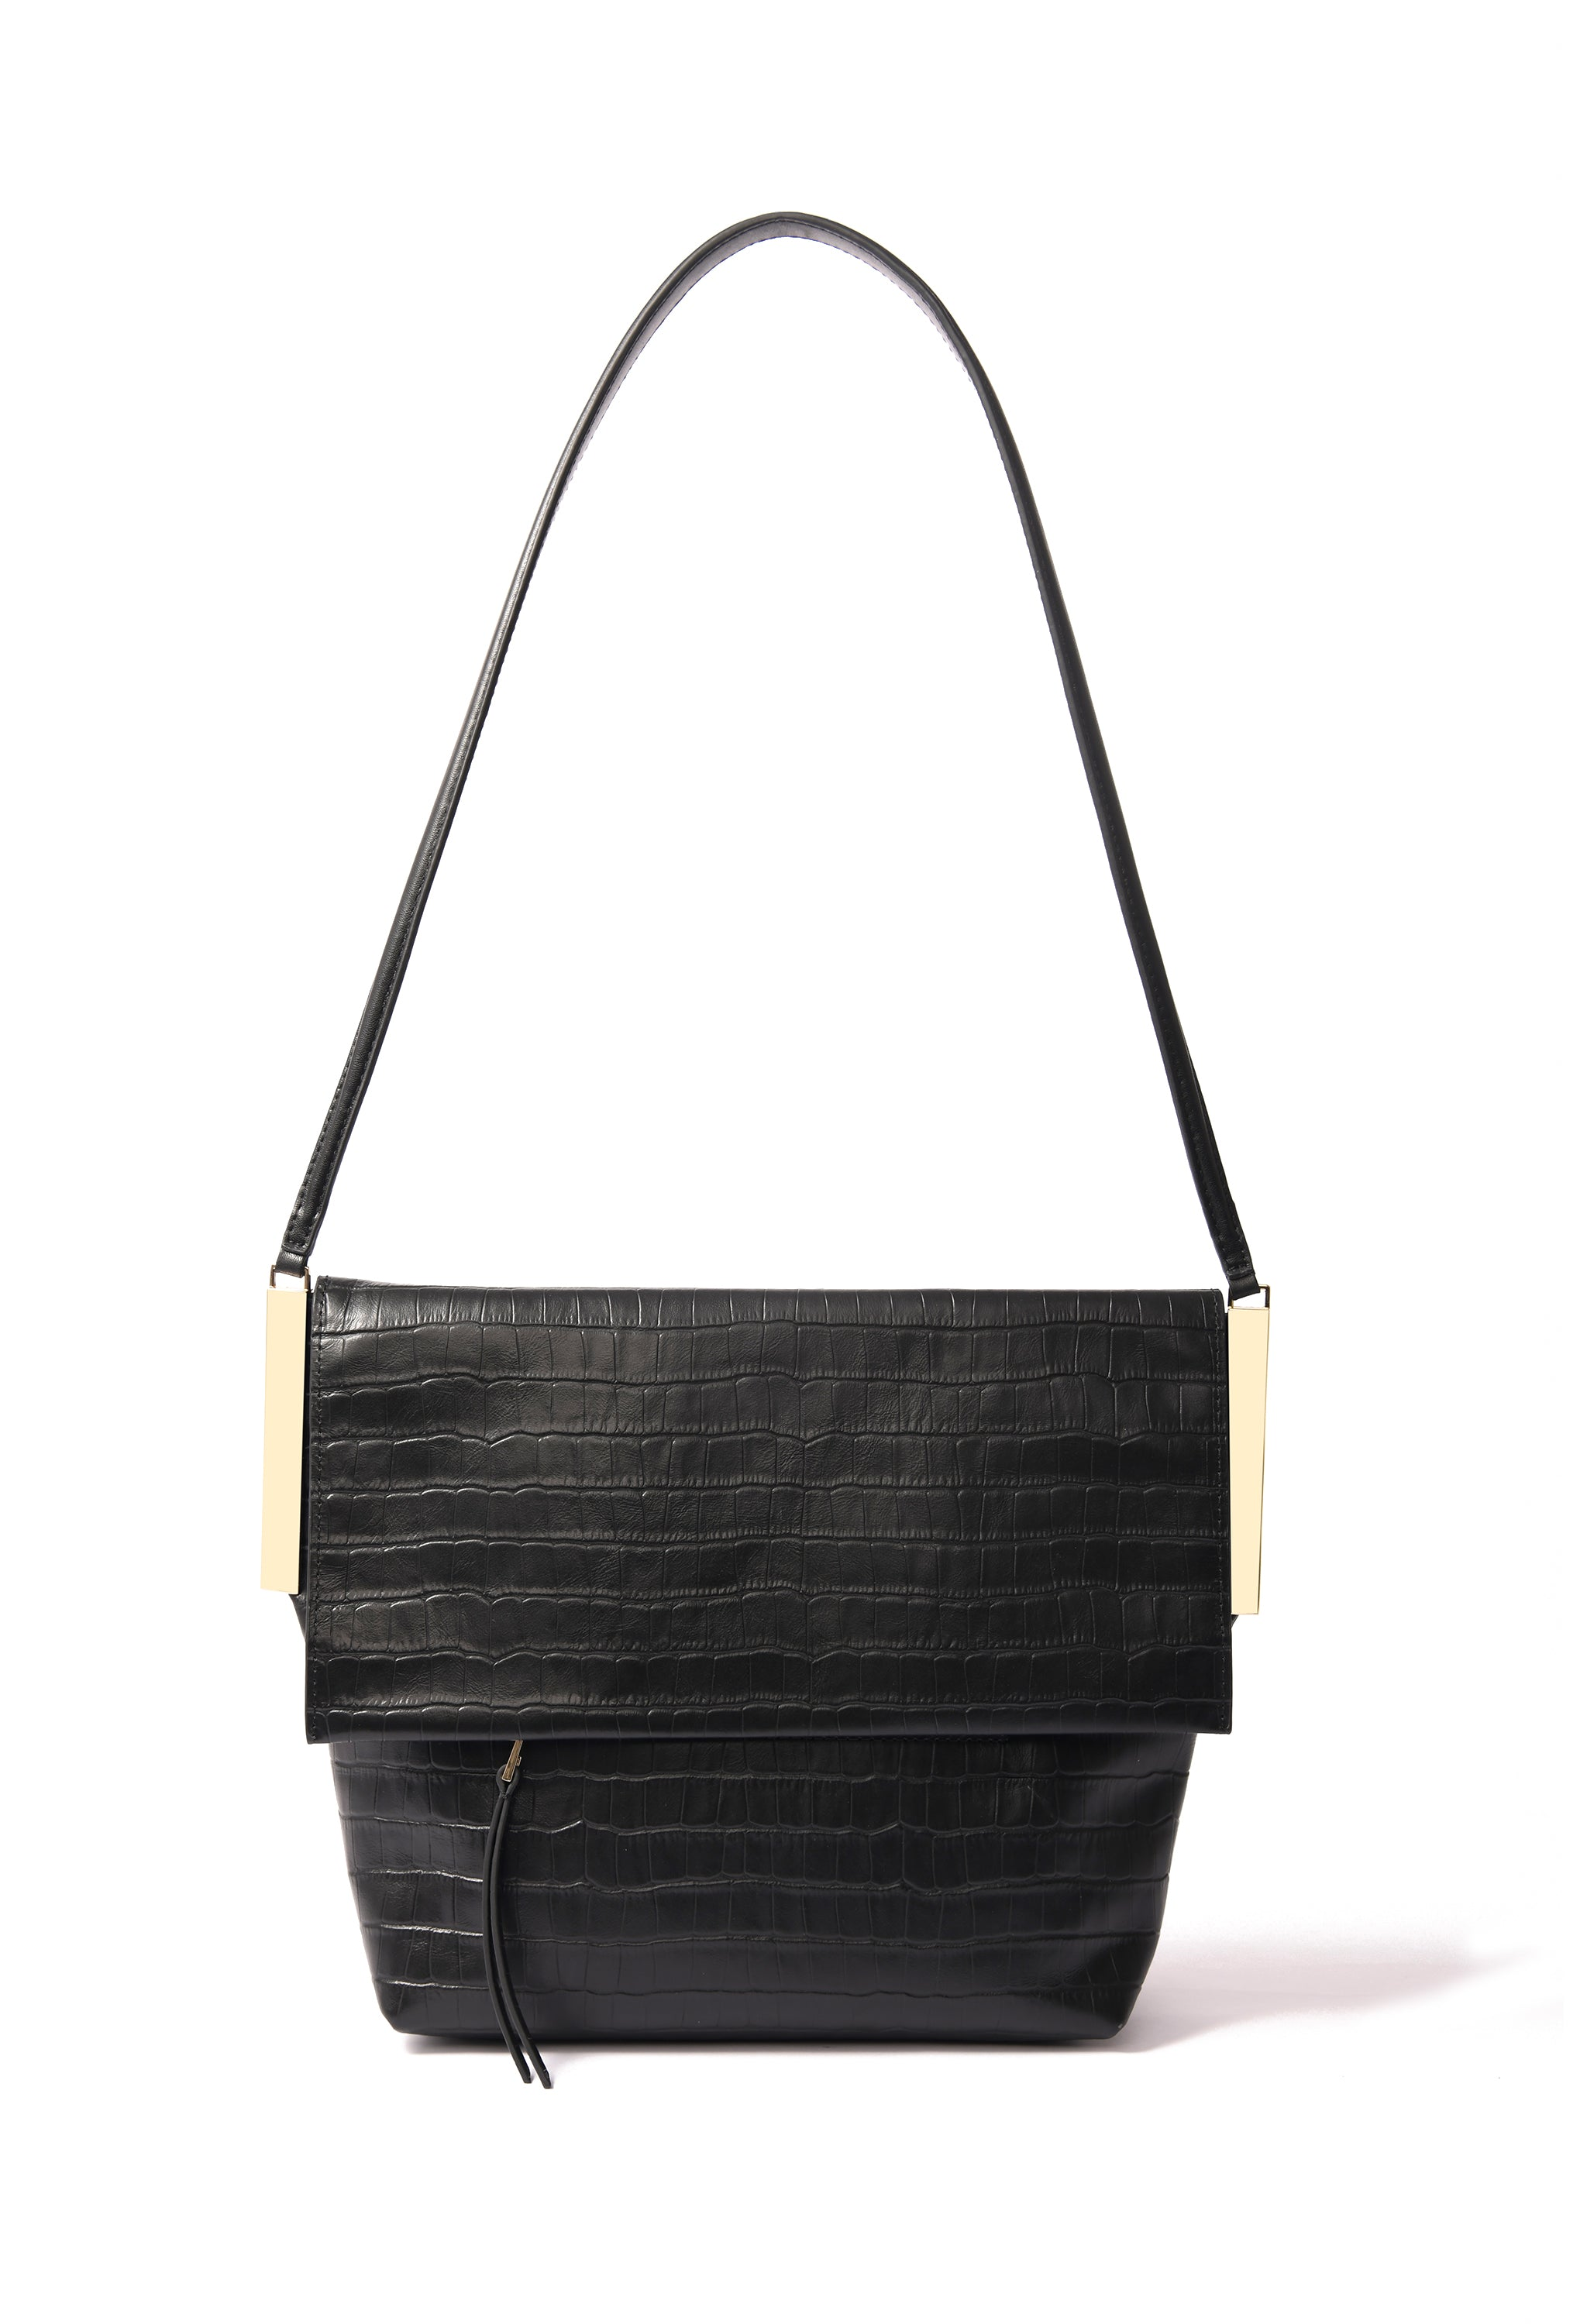 Giselle Bag in croco embossed leather, Black